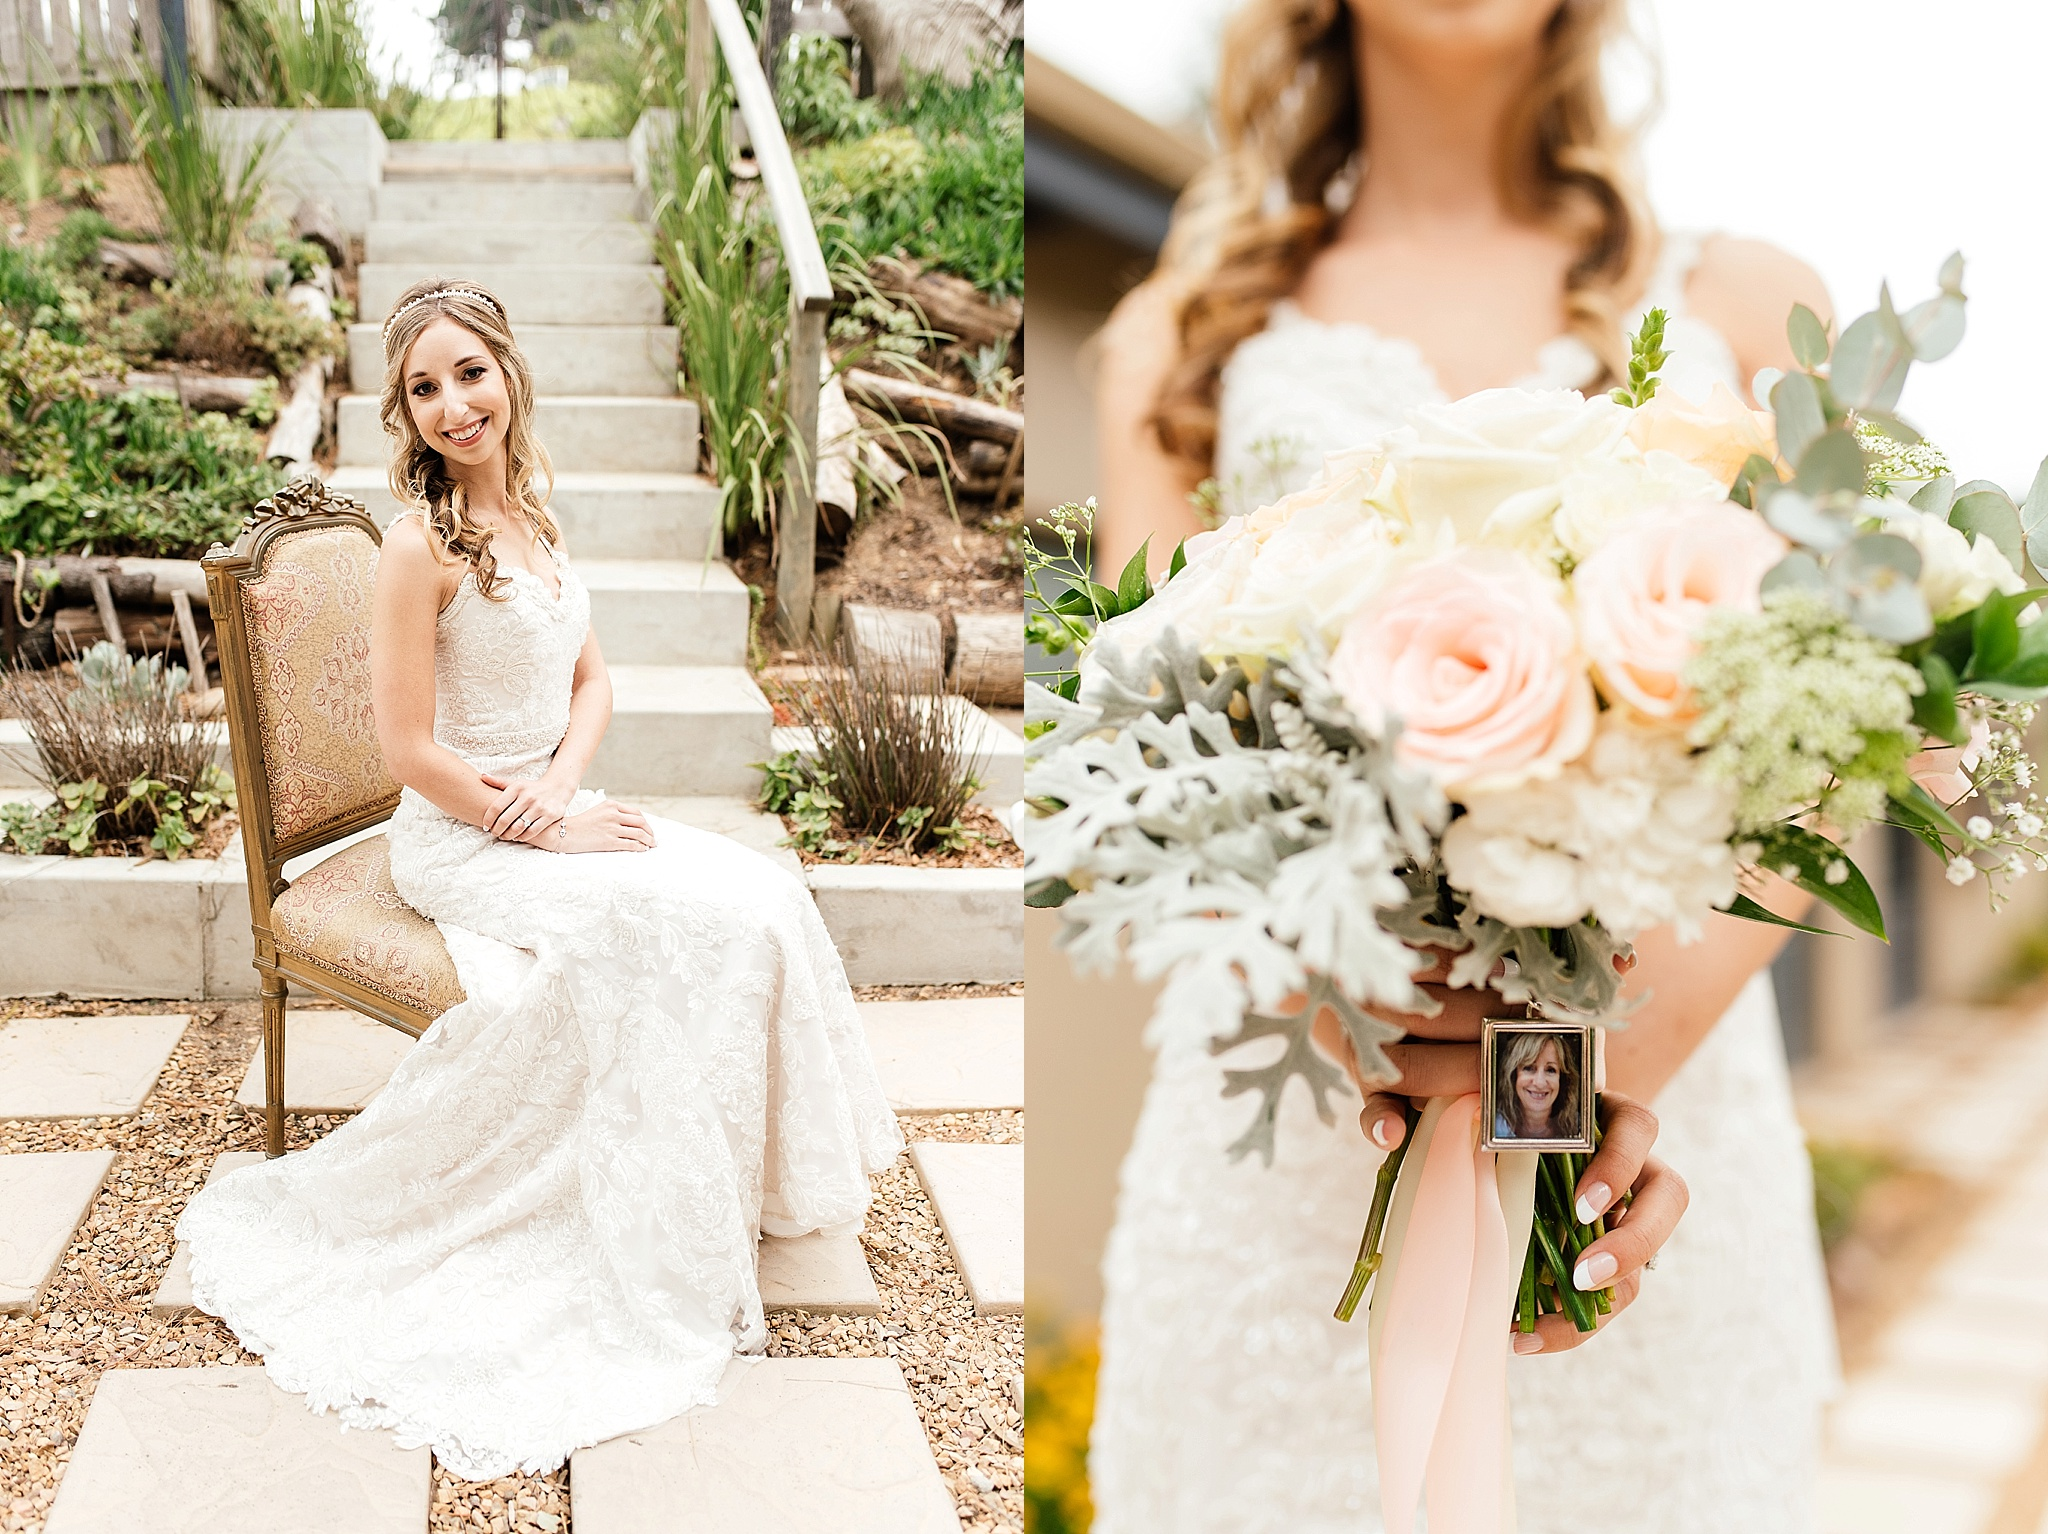 Cape Town Wedding Photographer Darren Bester - SuikerBossie - Stephen and Mikaela_0013.jpg